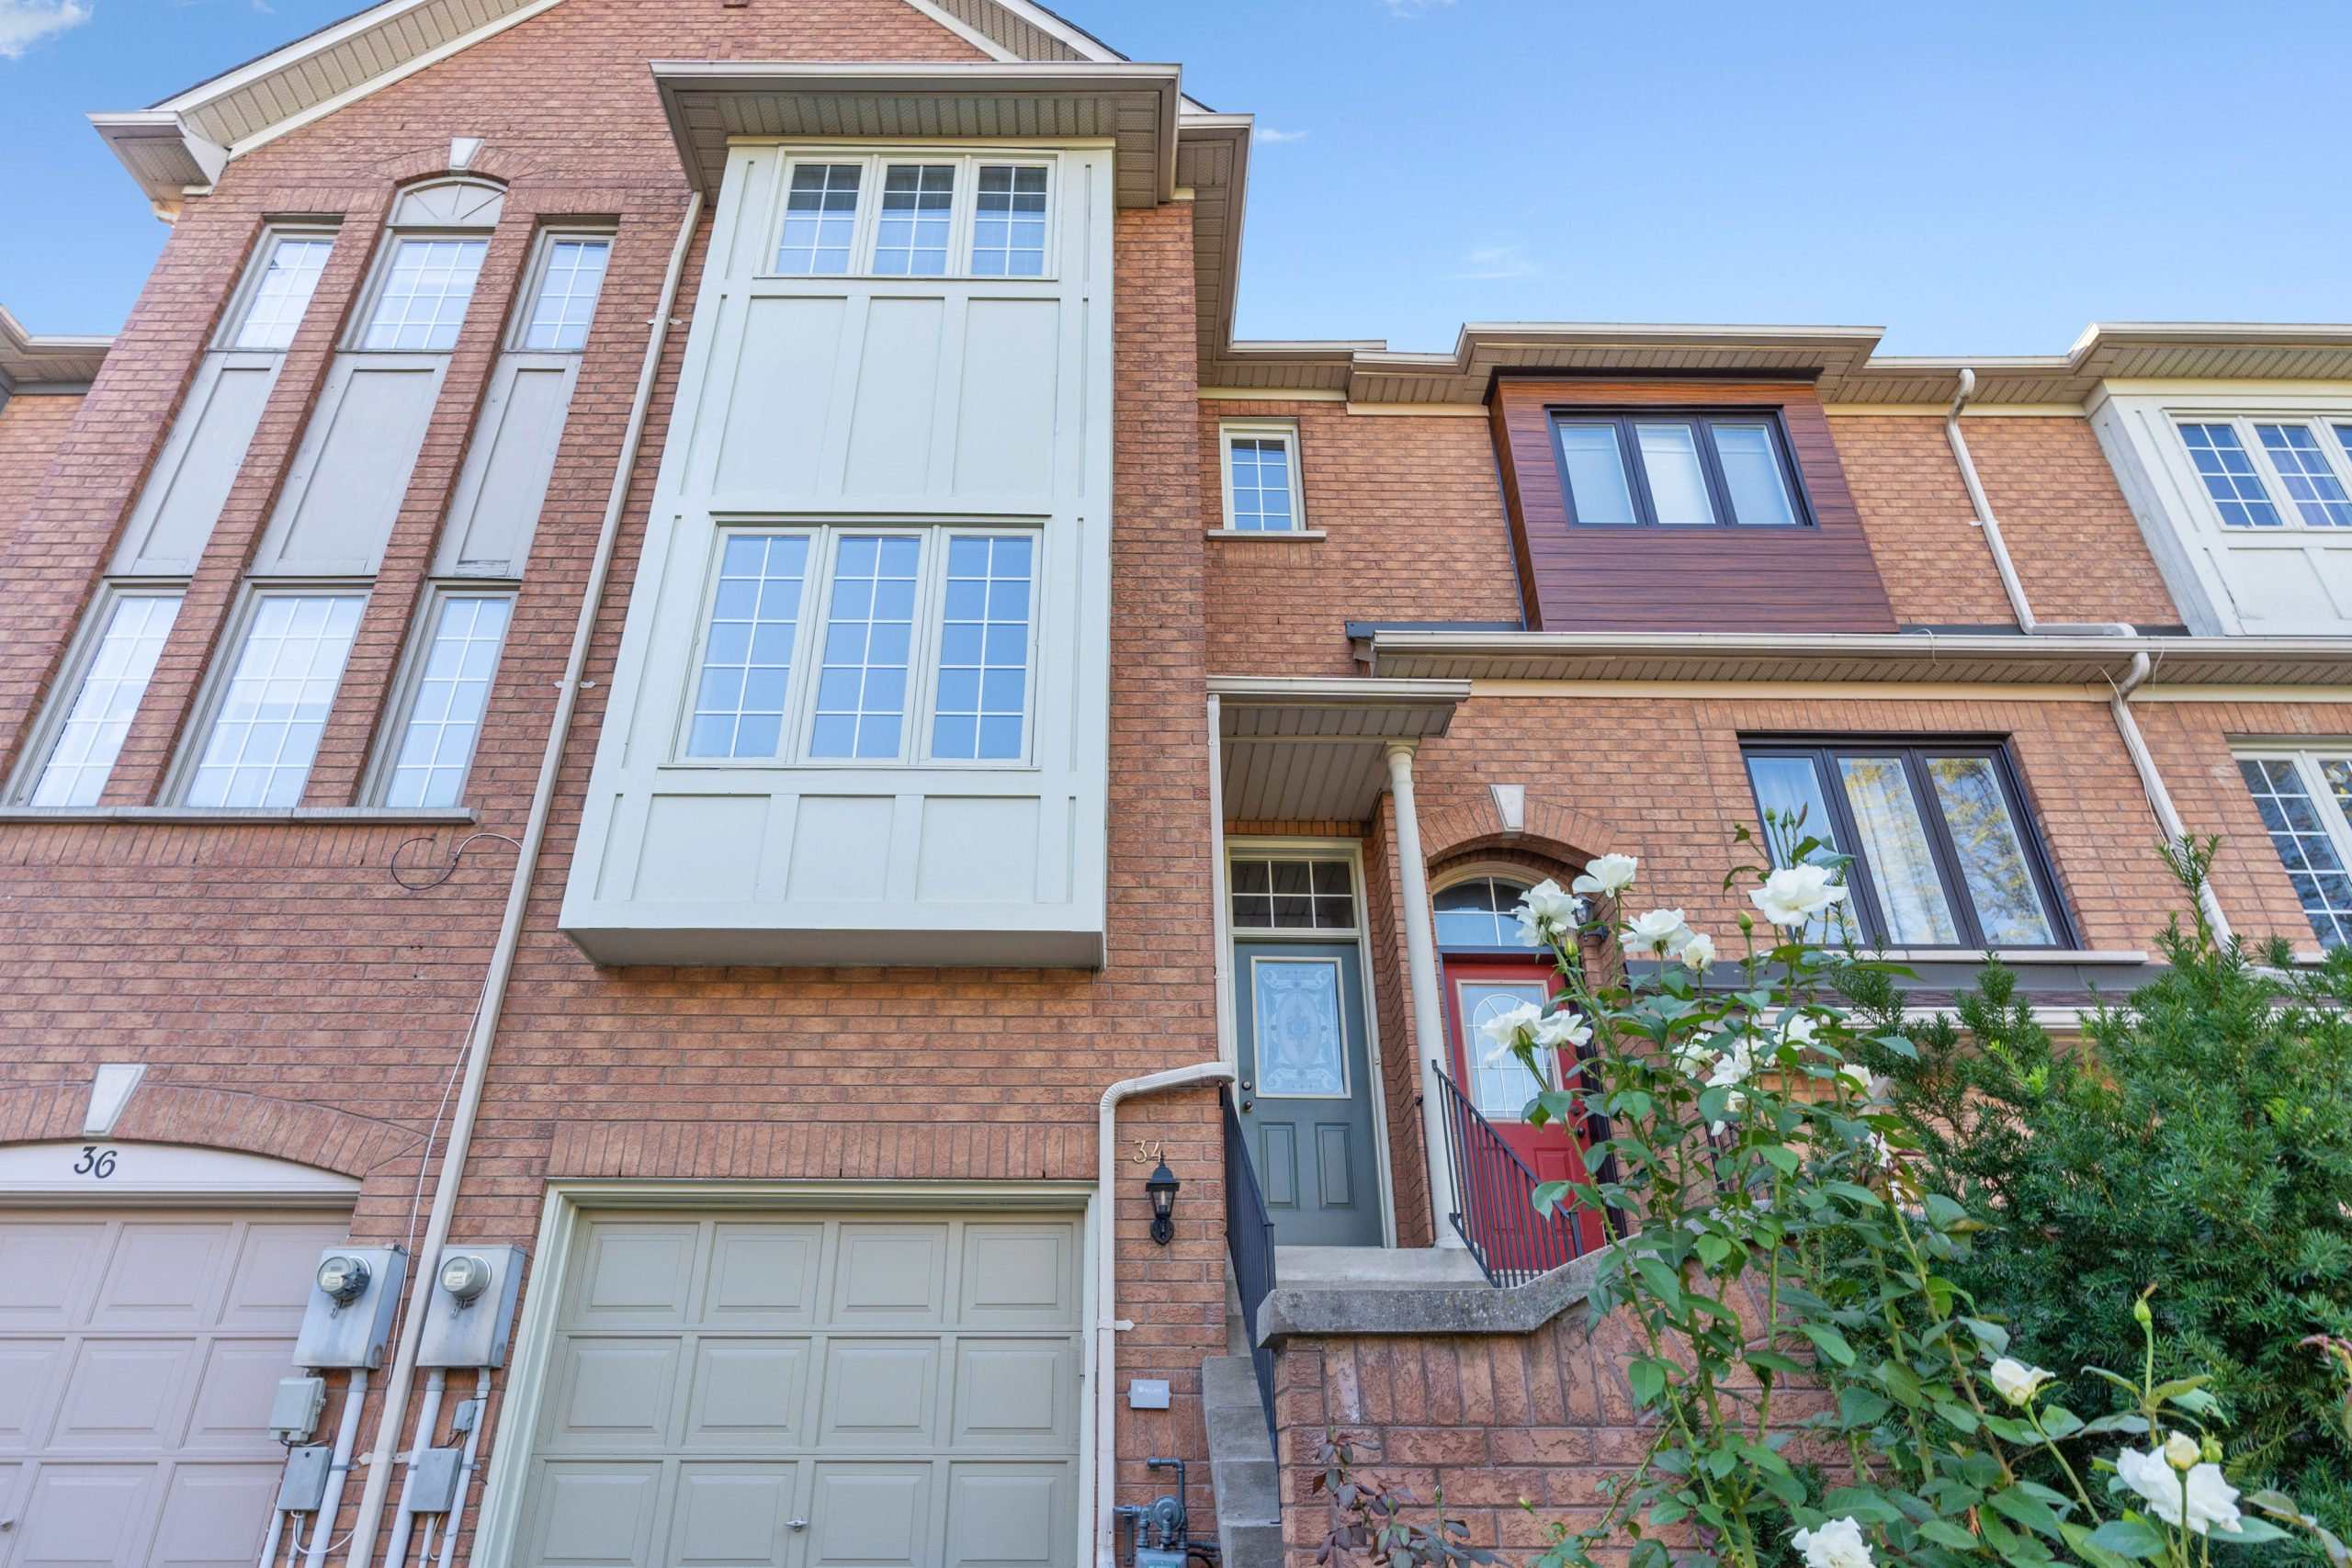 34 BLUEWATER COURT – A STUNNING MIMICO TOWNHOUSE